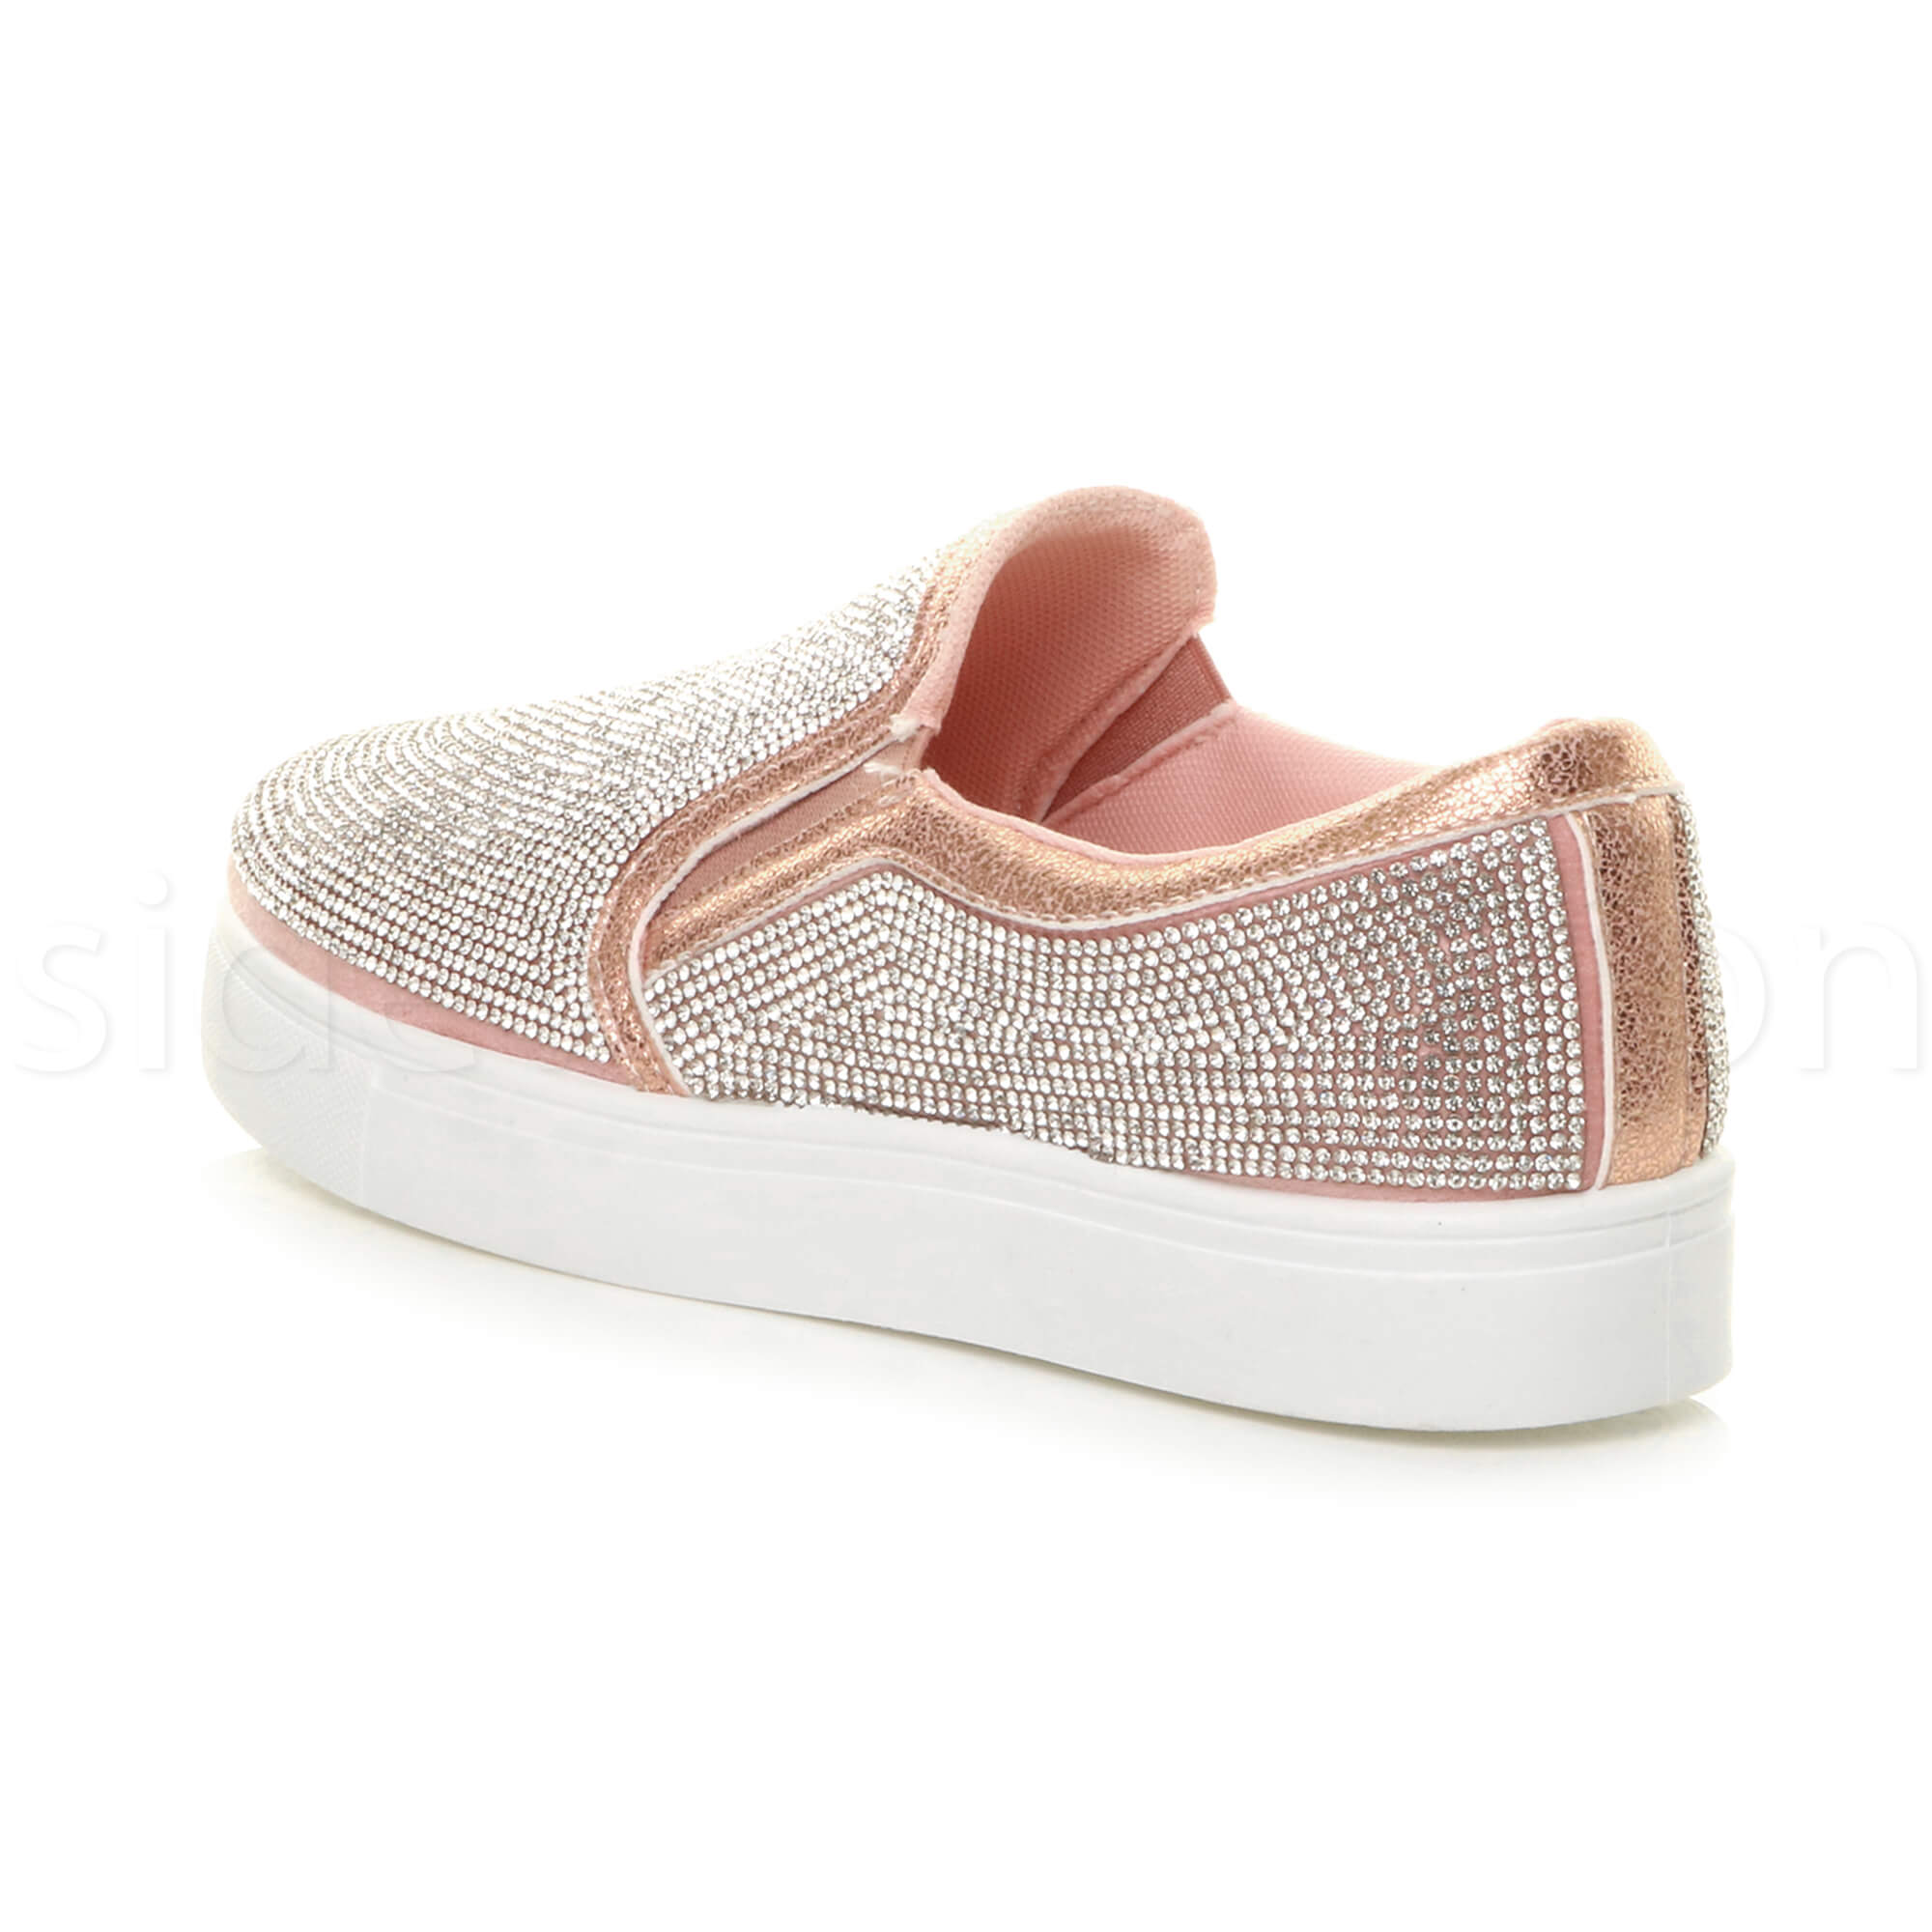 Details zu Womens ladies flat glitter sparkly slip on casual plimsoles trainers shoes size